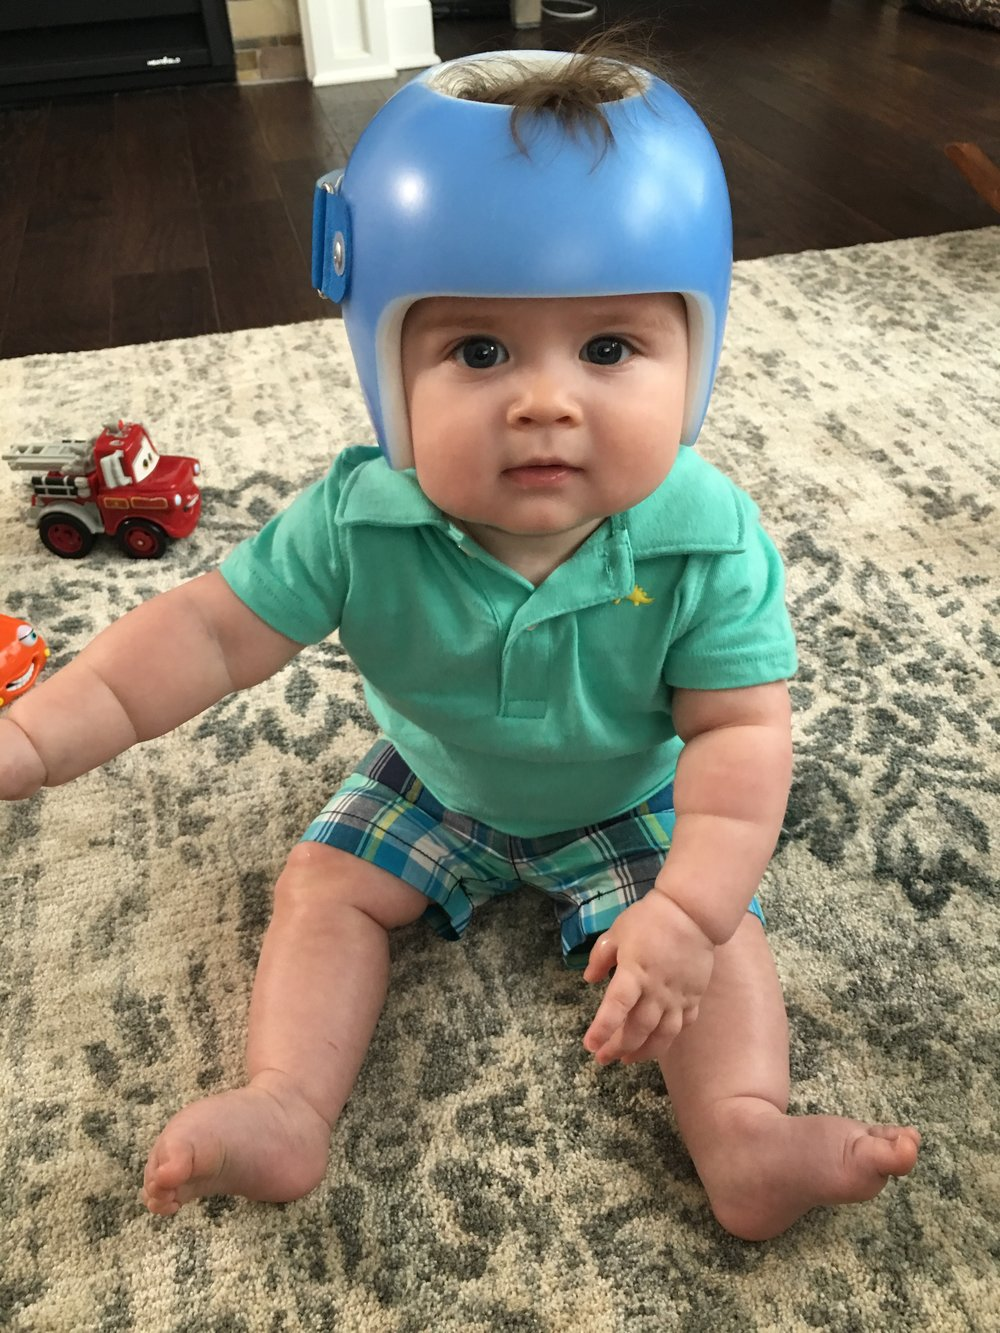 STARband Kids - Baby helmet decalsa family blog that takes you through the experience of a baby with